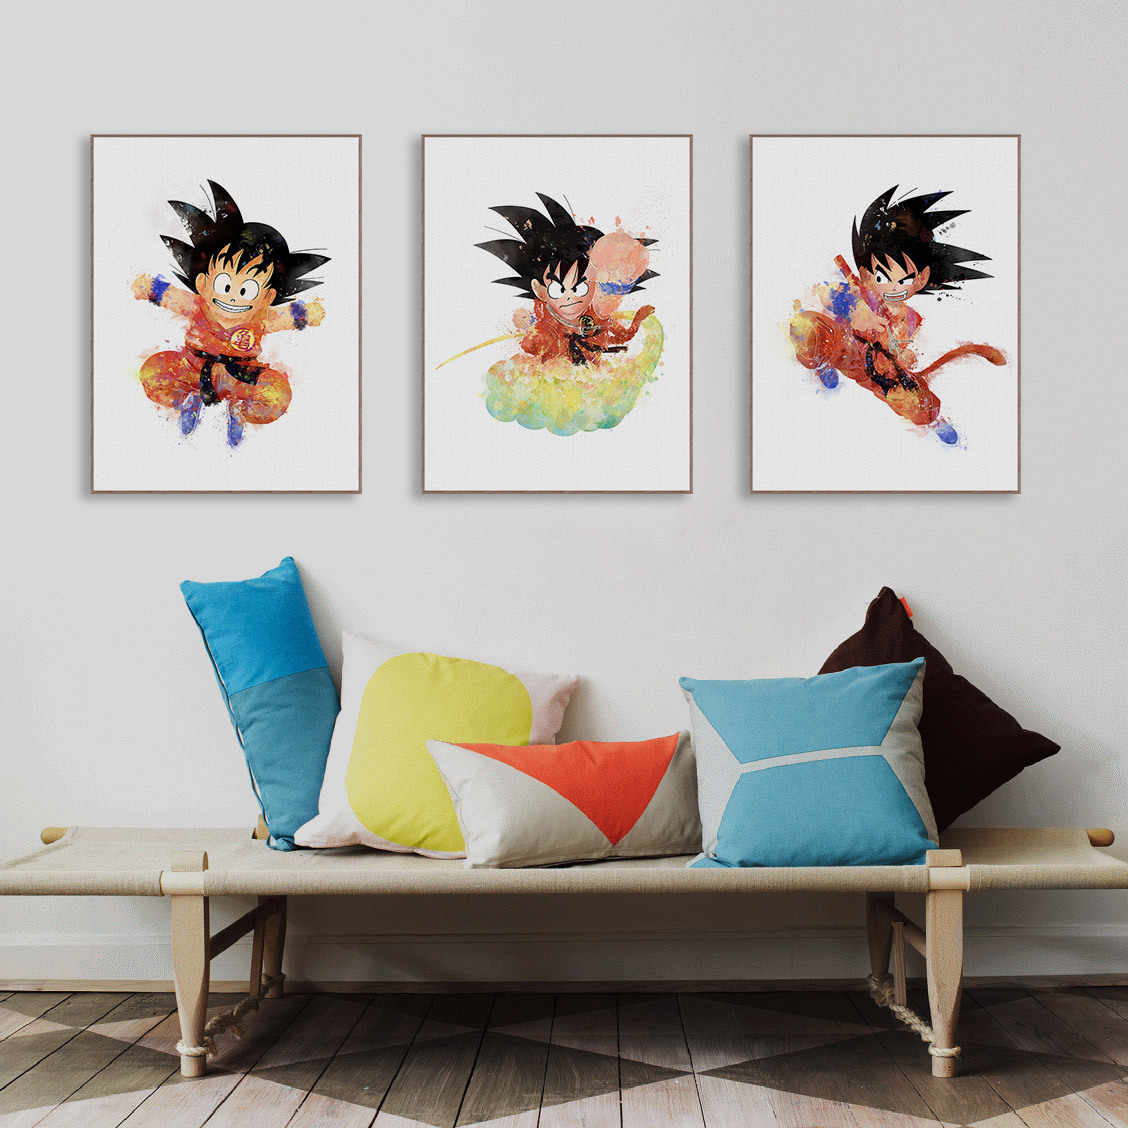 New Watercolor Dragon Ball UnFramed Picture Cartoon Animation Son Goku Kakarotto Japan Decorative Canvas Painting Anime Poster